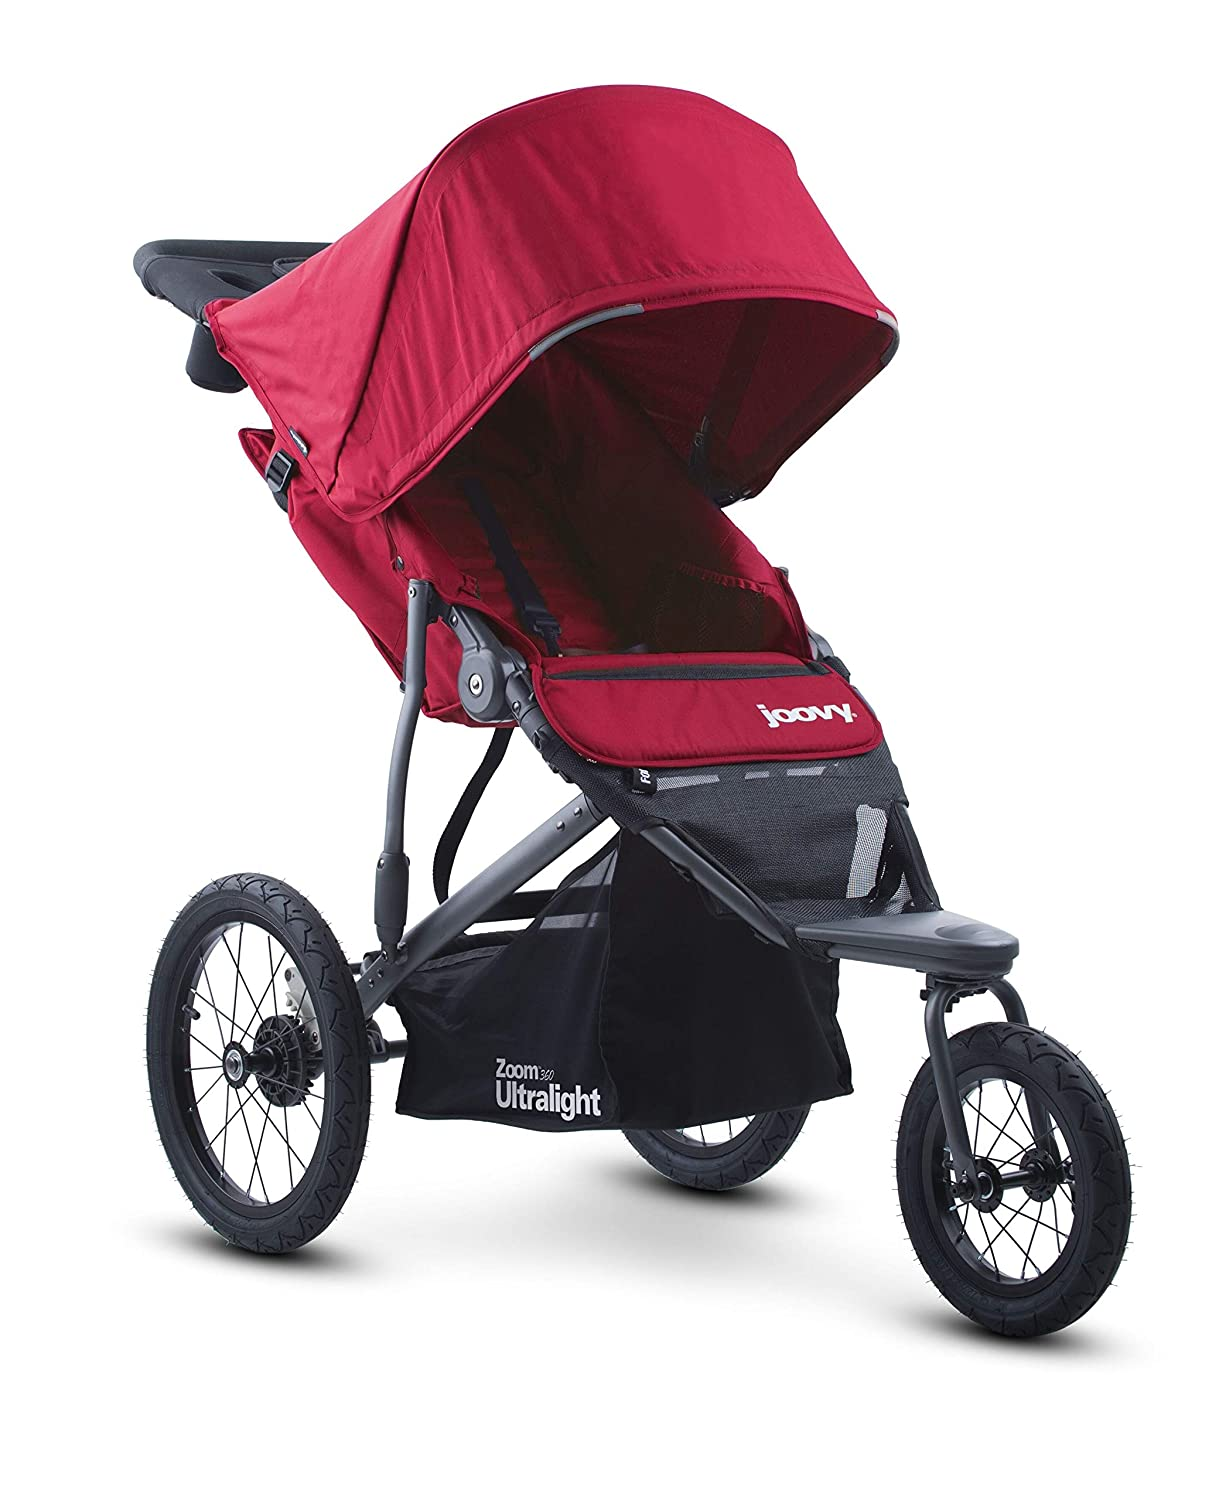 Joovy Zoom 360 Ultralight Jogging Stroller, Large Canopy, Lightweight Jogger, Extra Large Air Filled Tires, Red